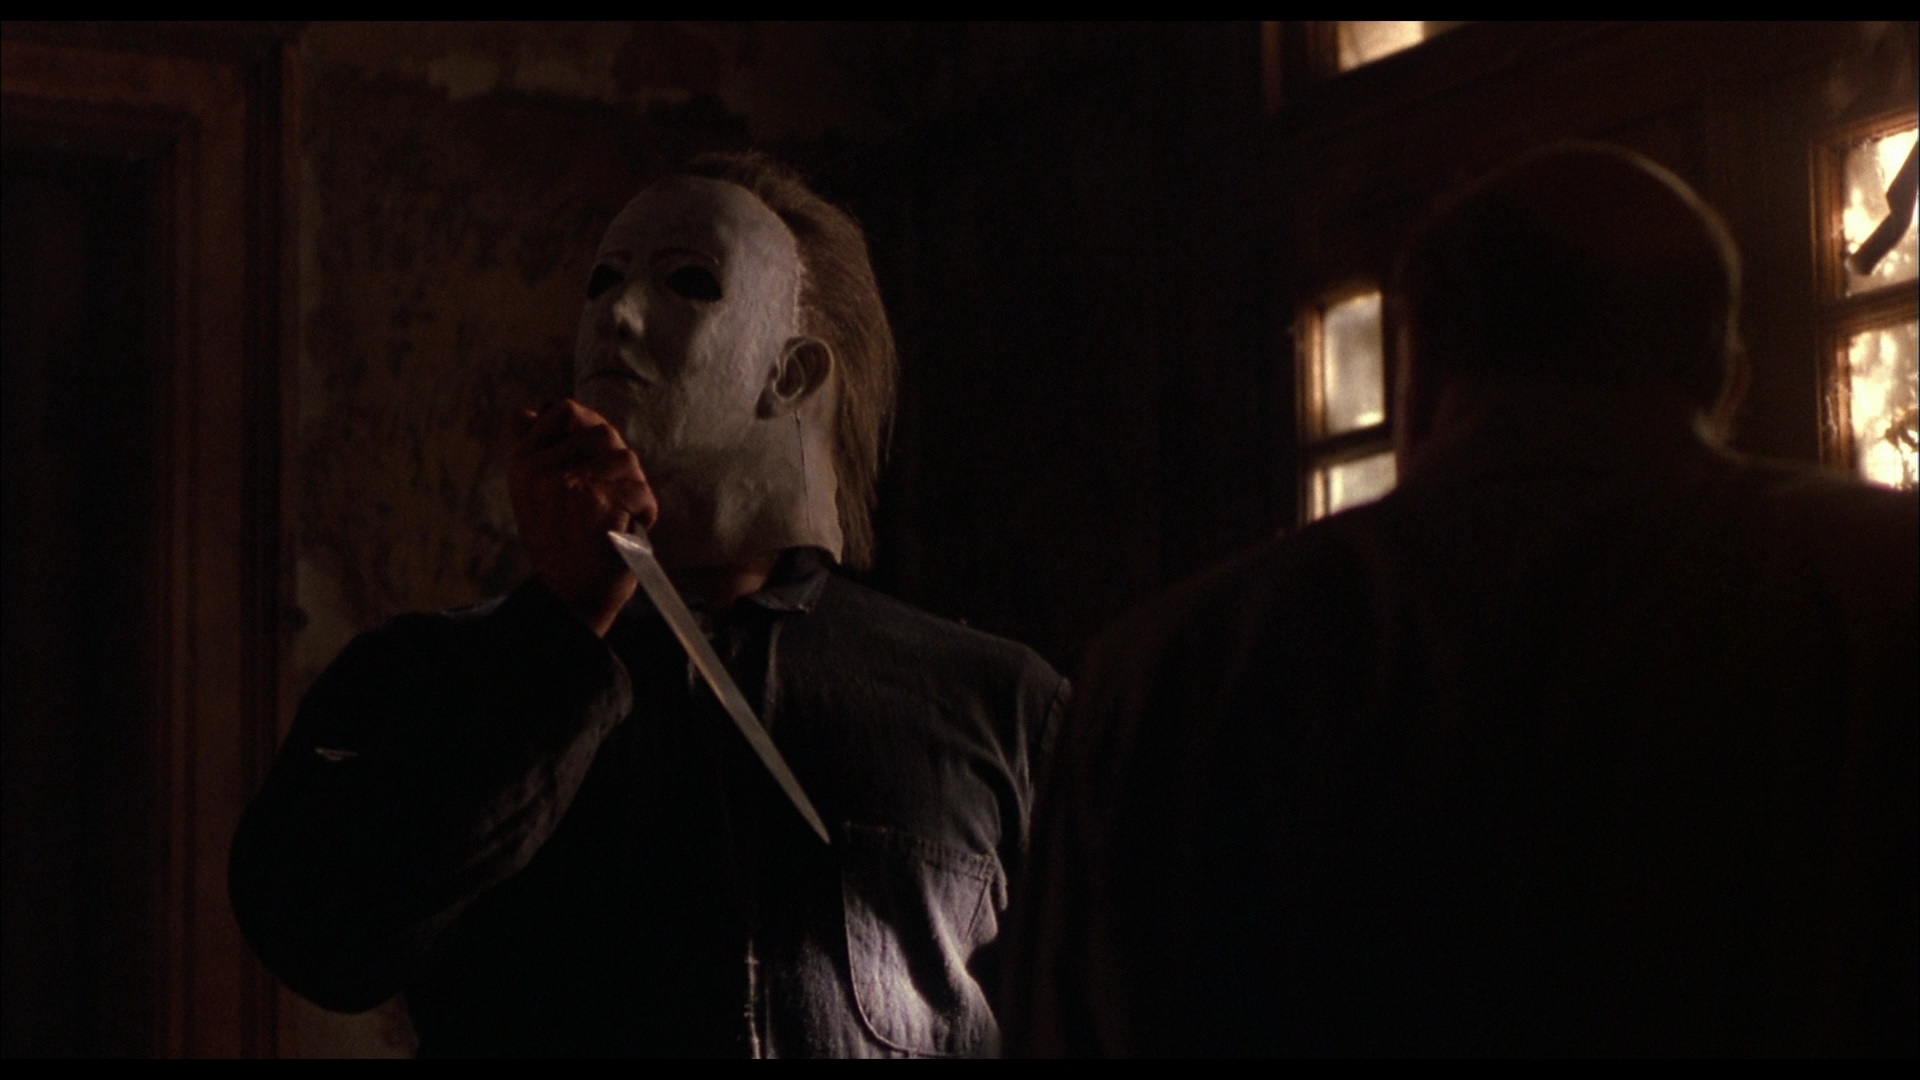 1920x1080 michael myers images for backgrounds desktop